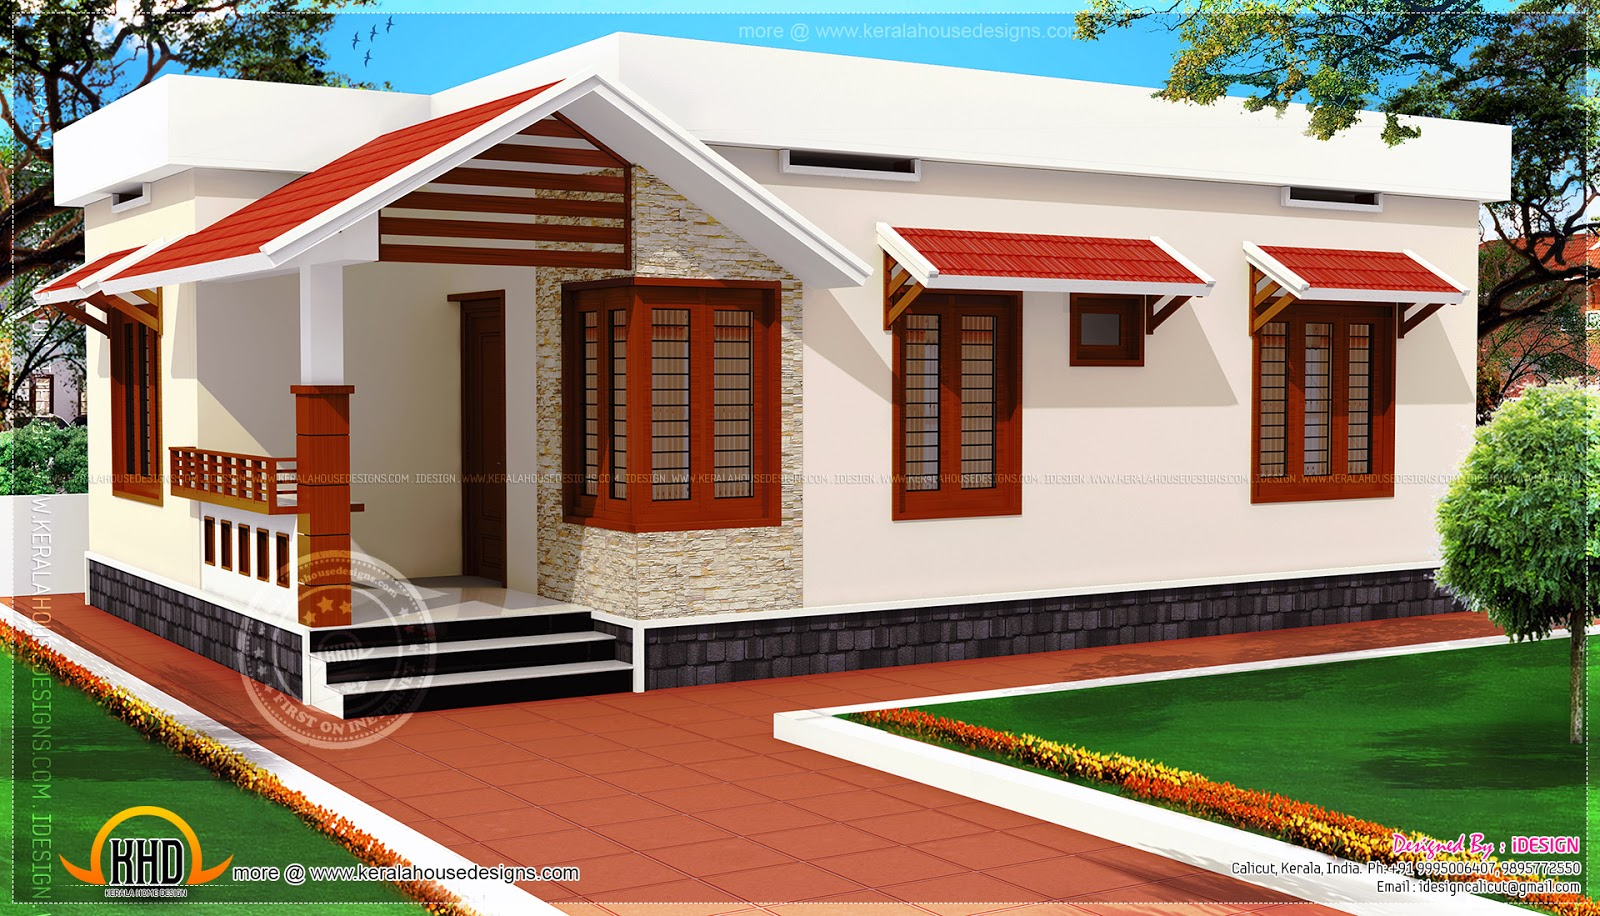 Low Cost Kerala Home Design In 730 Square Feet Newbrough